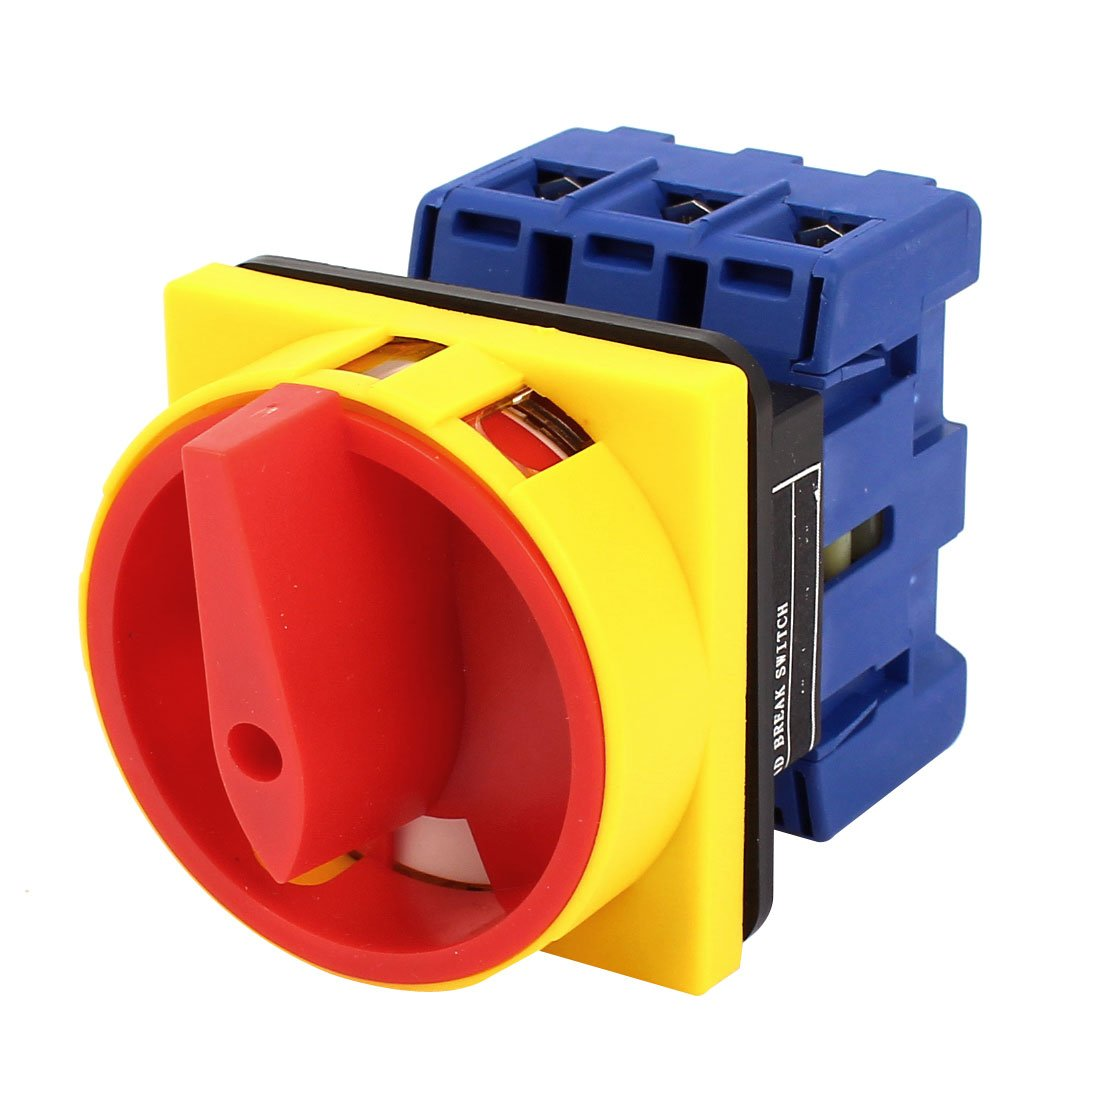 sourcingmap® SZD11-40A Changeover Combination Rotary Load Break Switch 40A 690V US-SA-AJD-86000